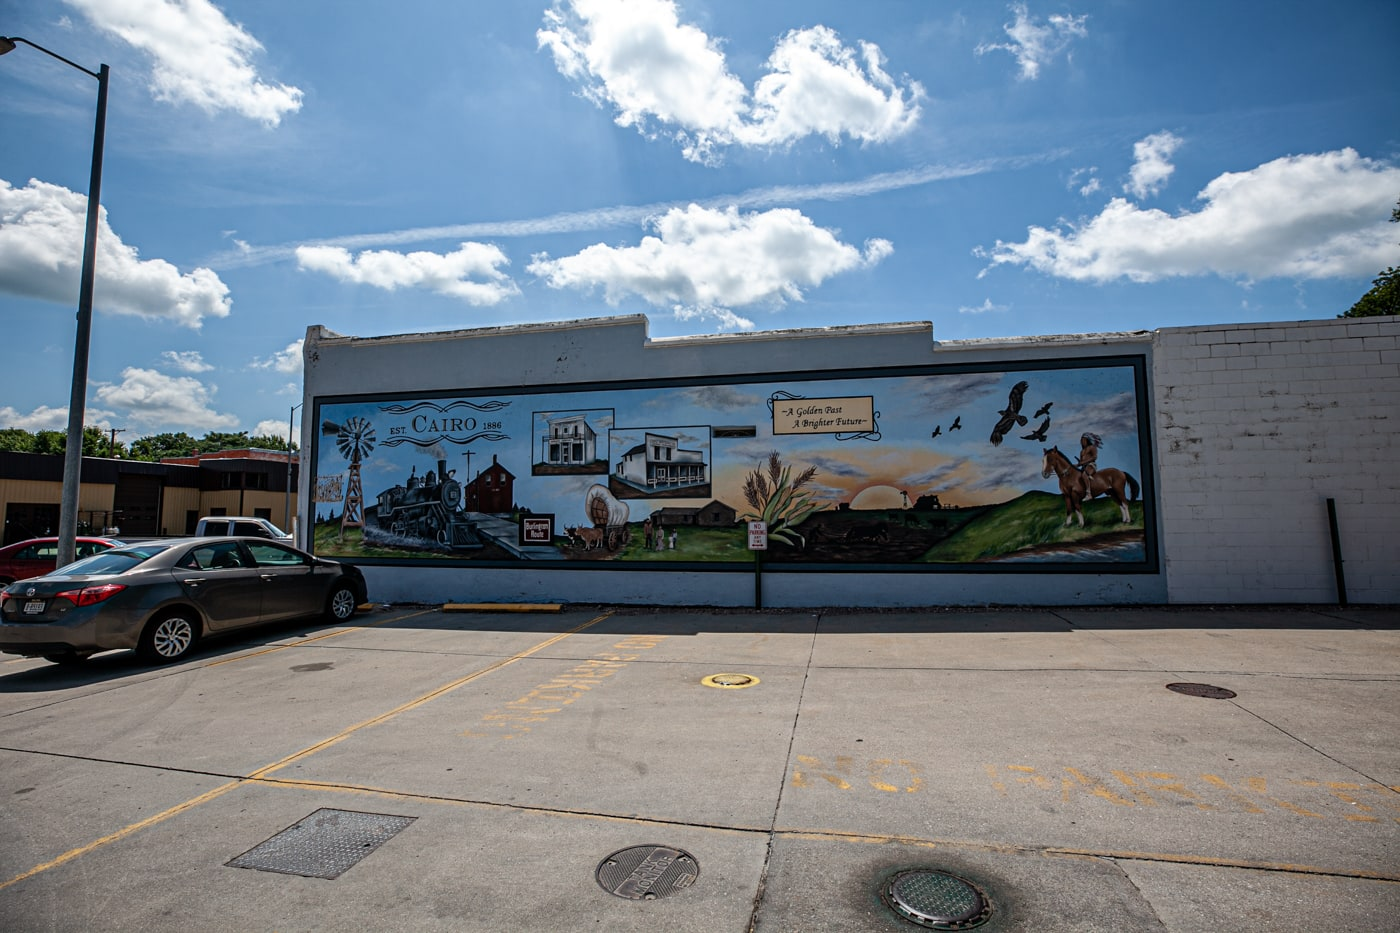 Cairo, Nebraska Mural | Street Art in Nebraska